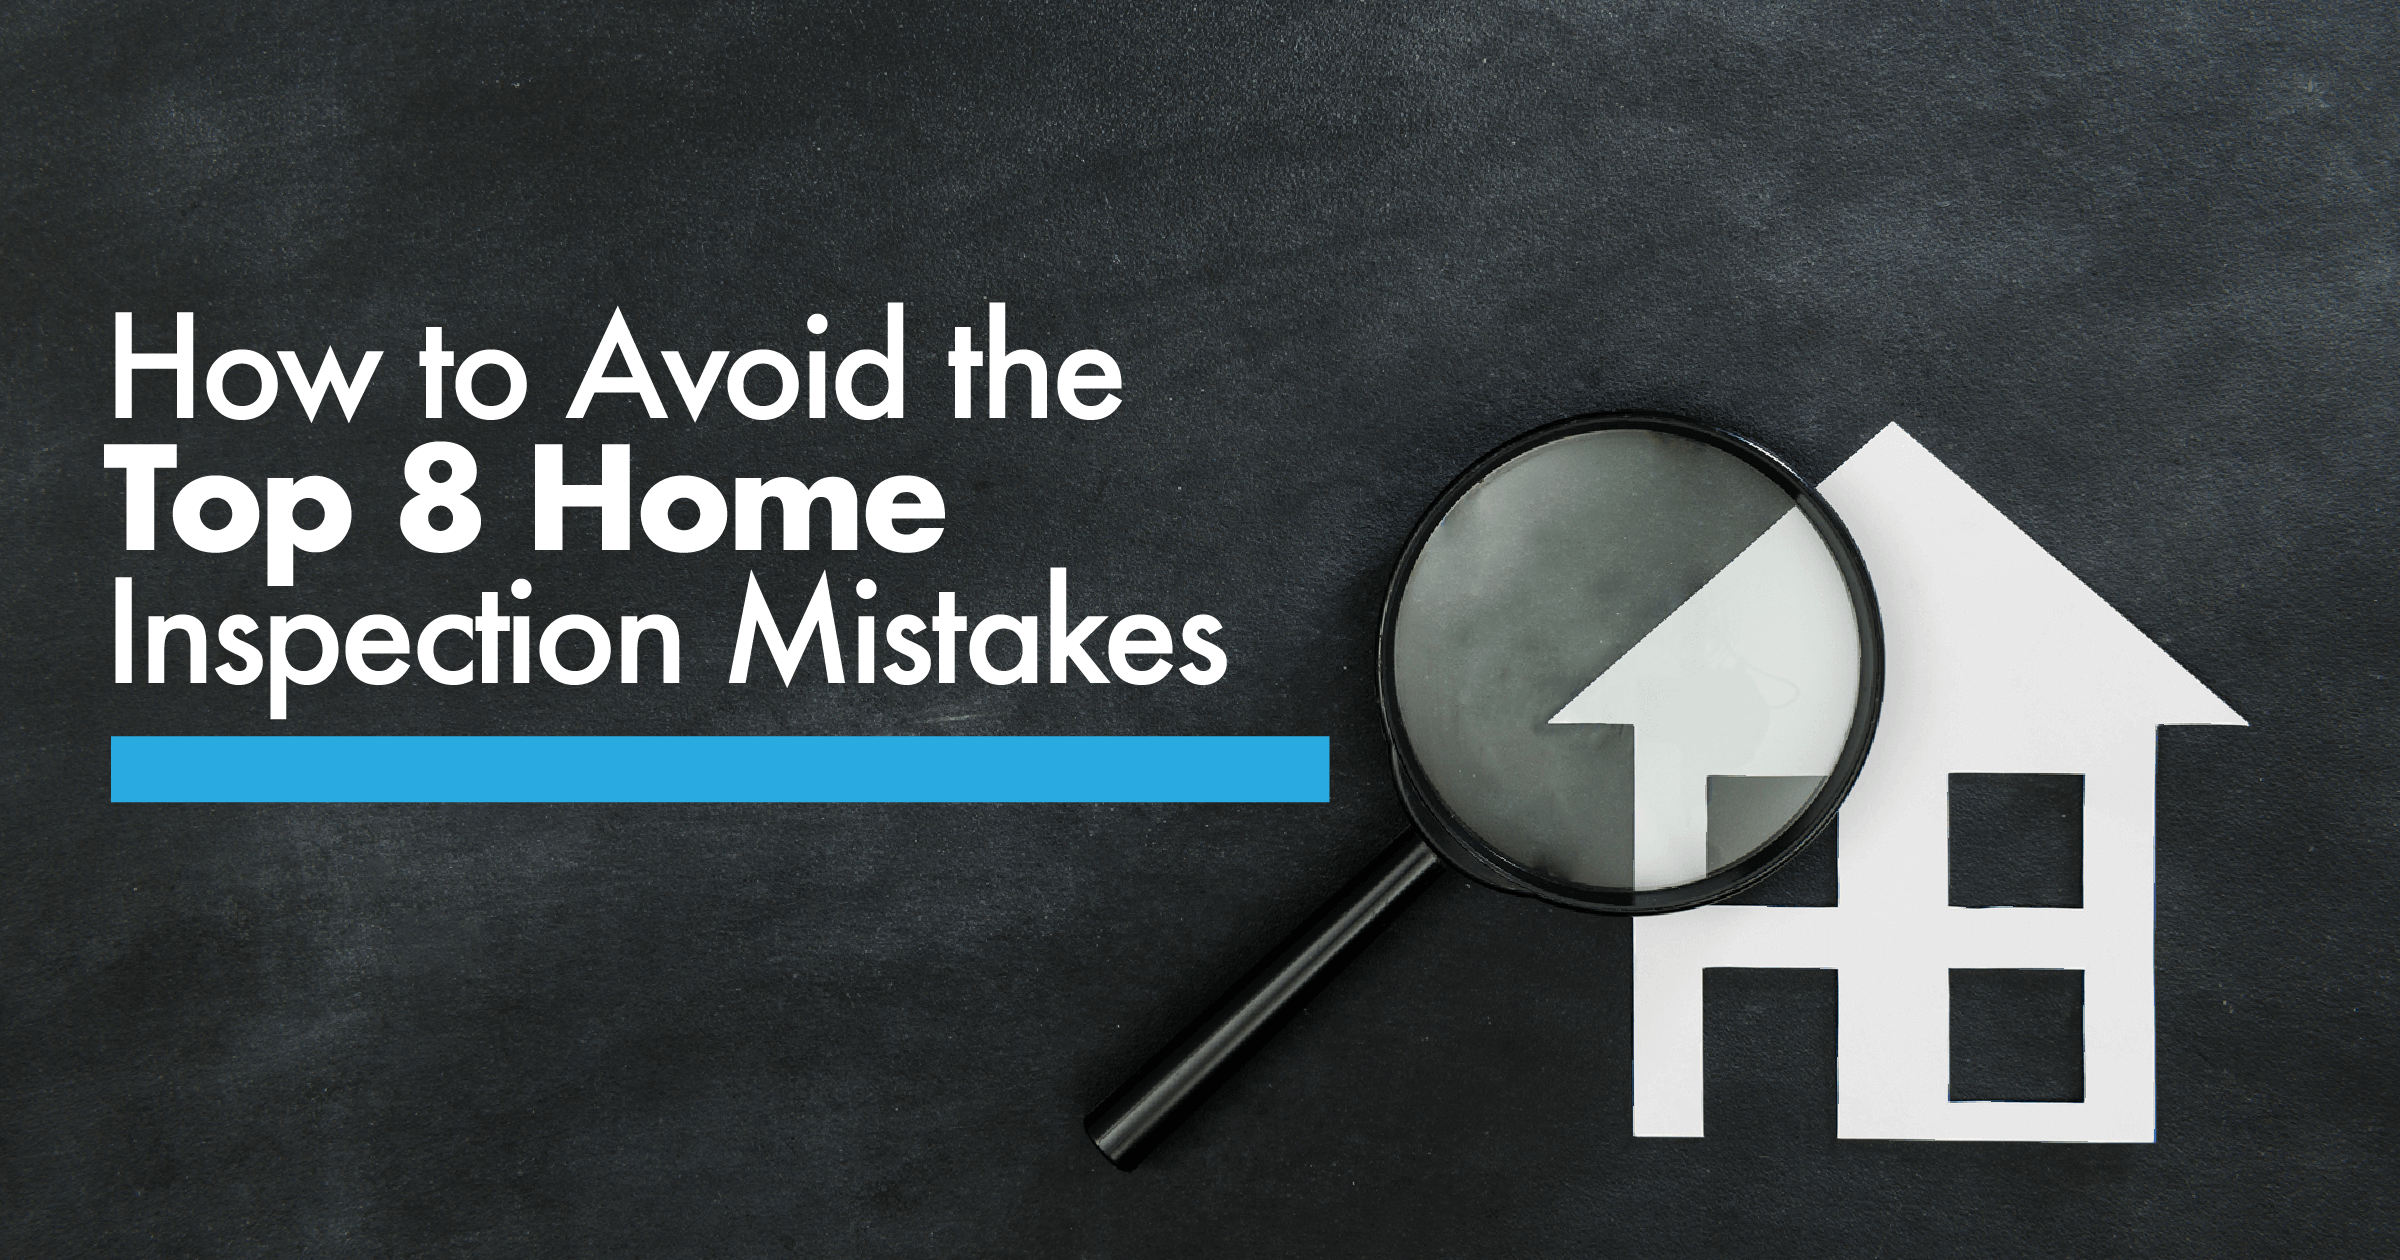 Top 8 Home Inspection Mistakes